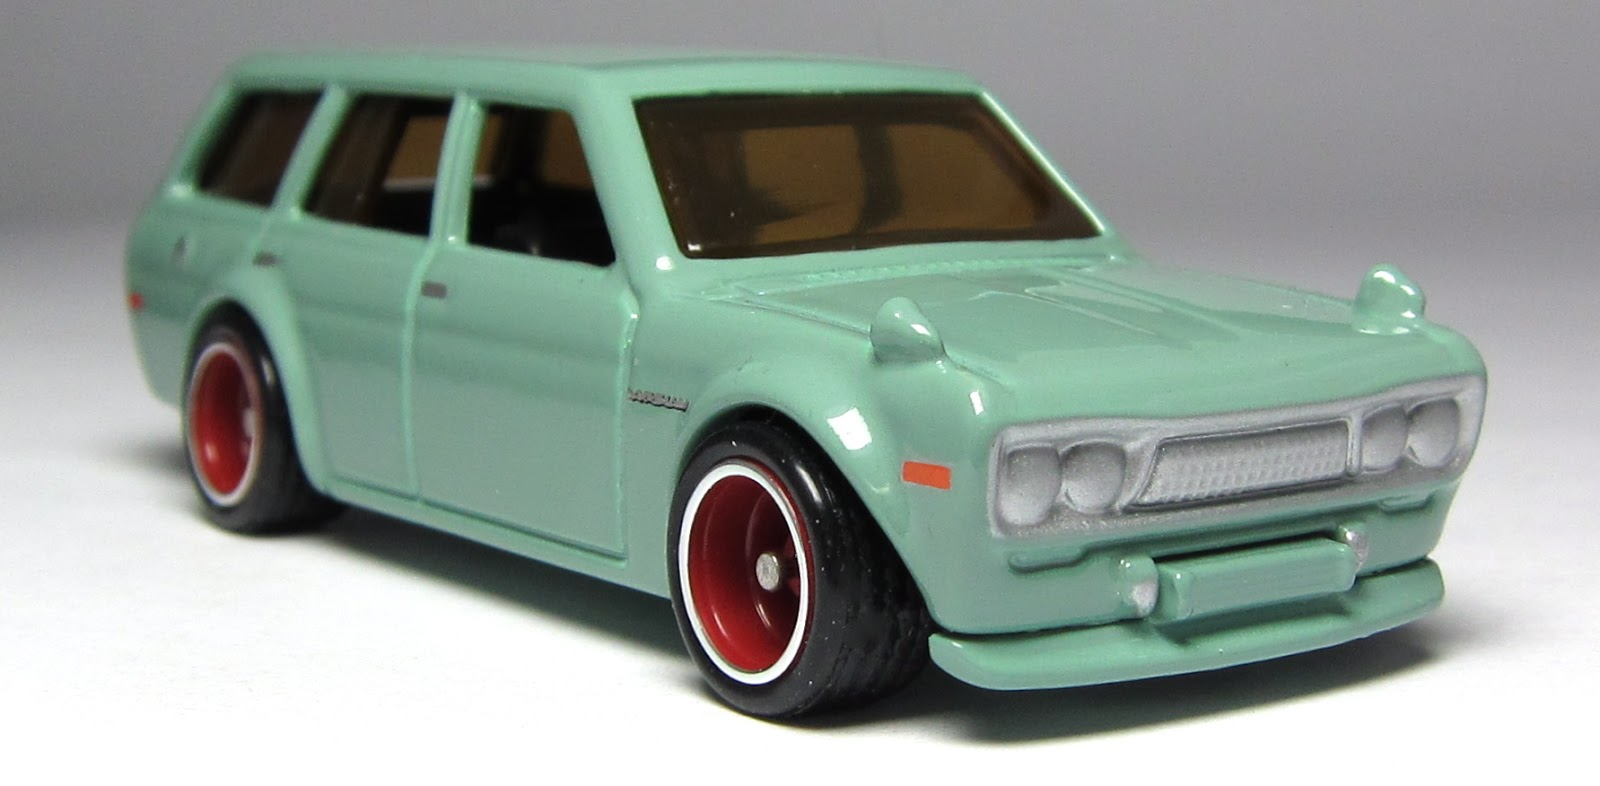 Datsun 510 - Pictures, posters, news and videos on your ...